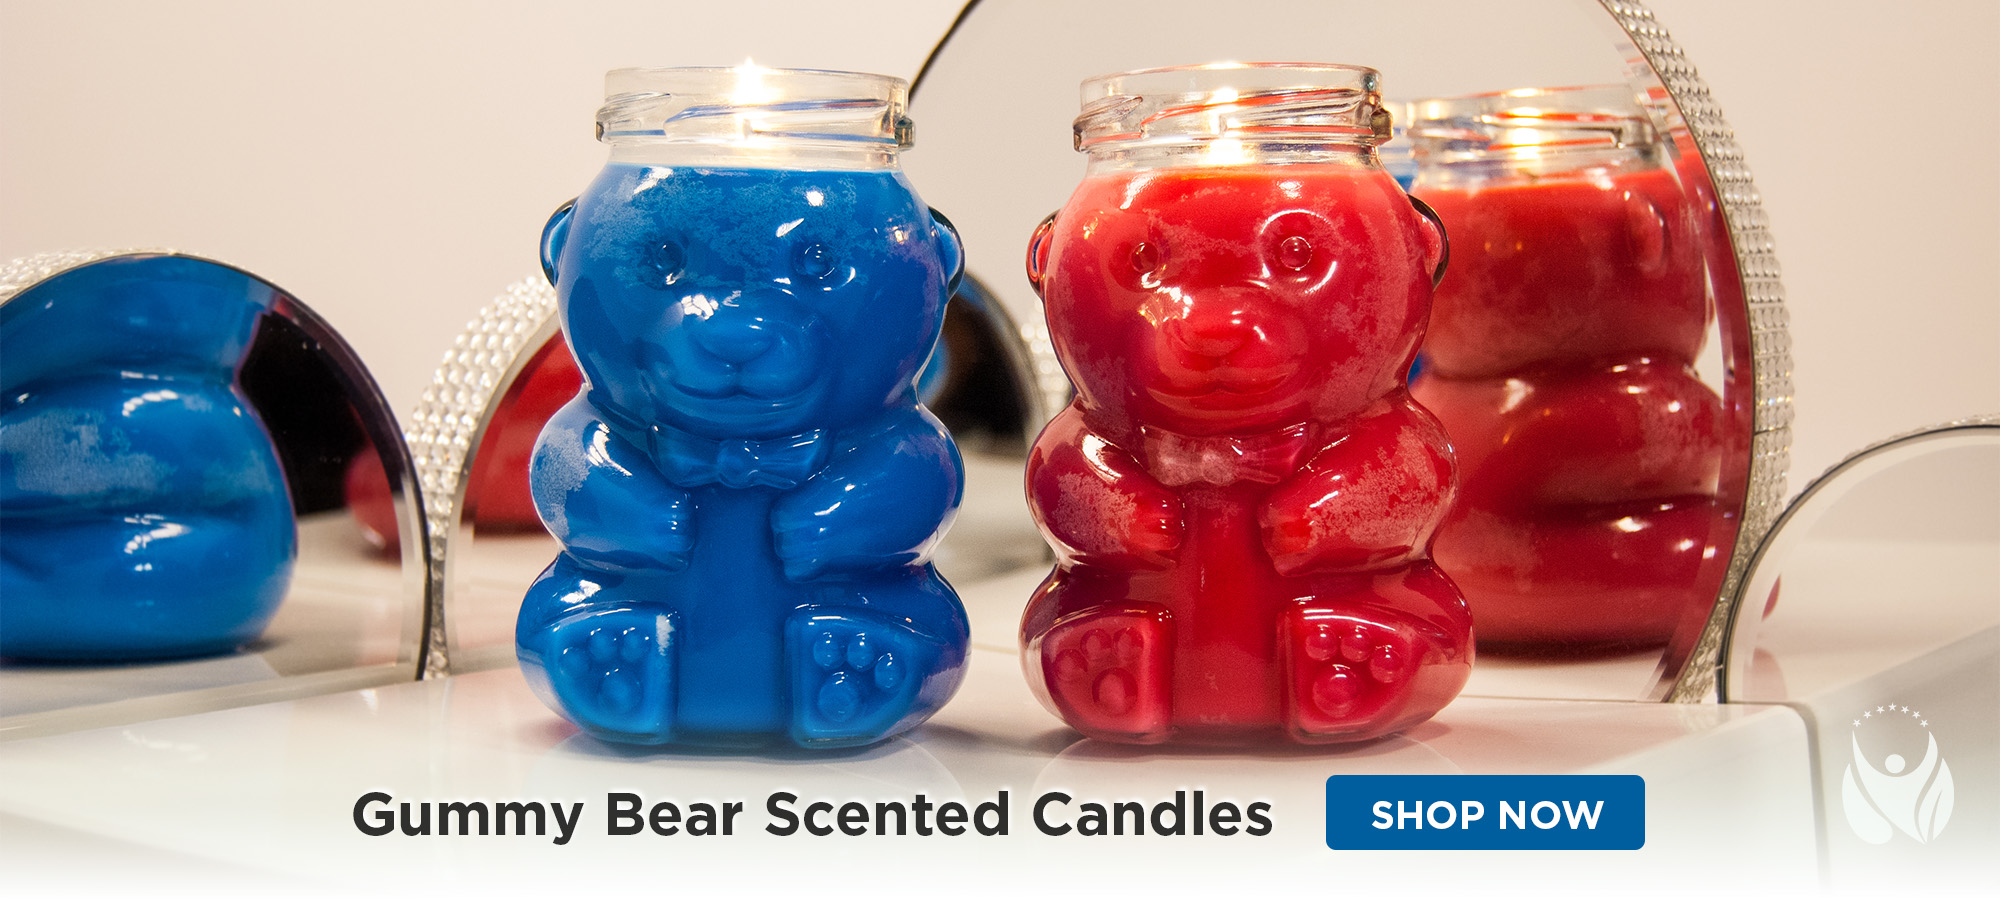 /store/ritzalife/p/1423:c:175_176/wax/specialty-candles/gummy-bear-scented-candles/